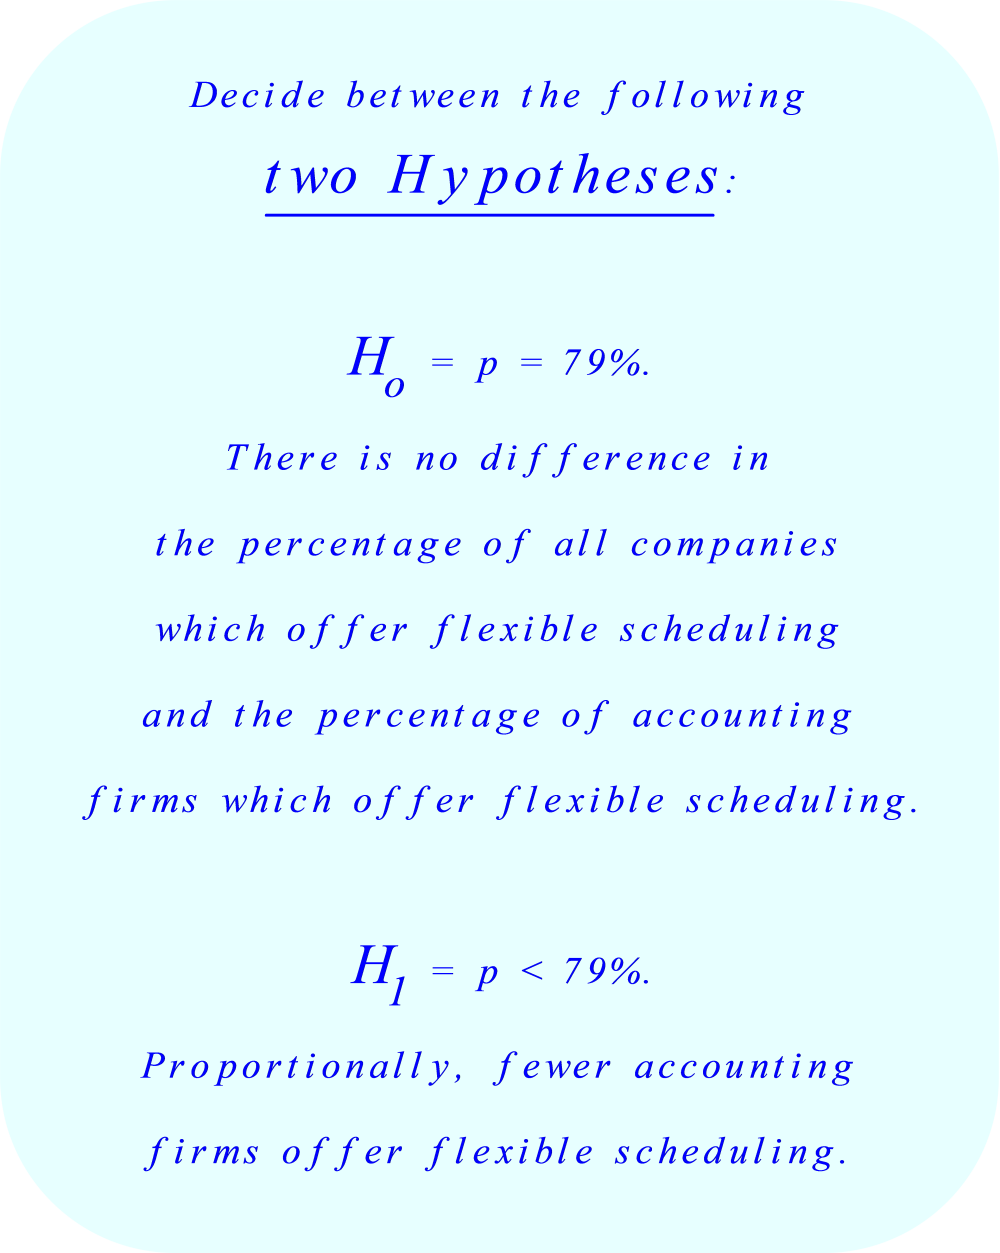 Decide between two hypotheses&#13;&#13;       H₀ = p = 79%&#13;&#13;       H₁ = p < 79%